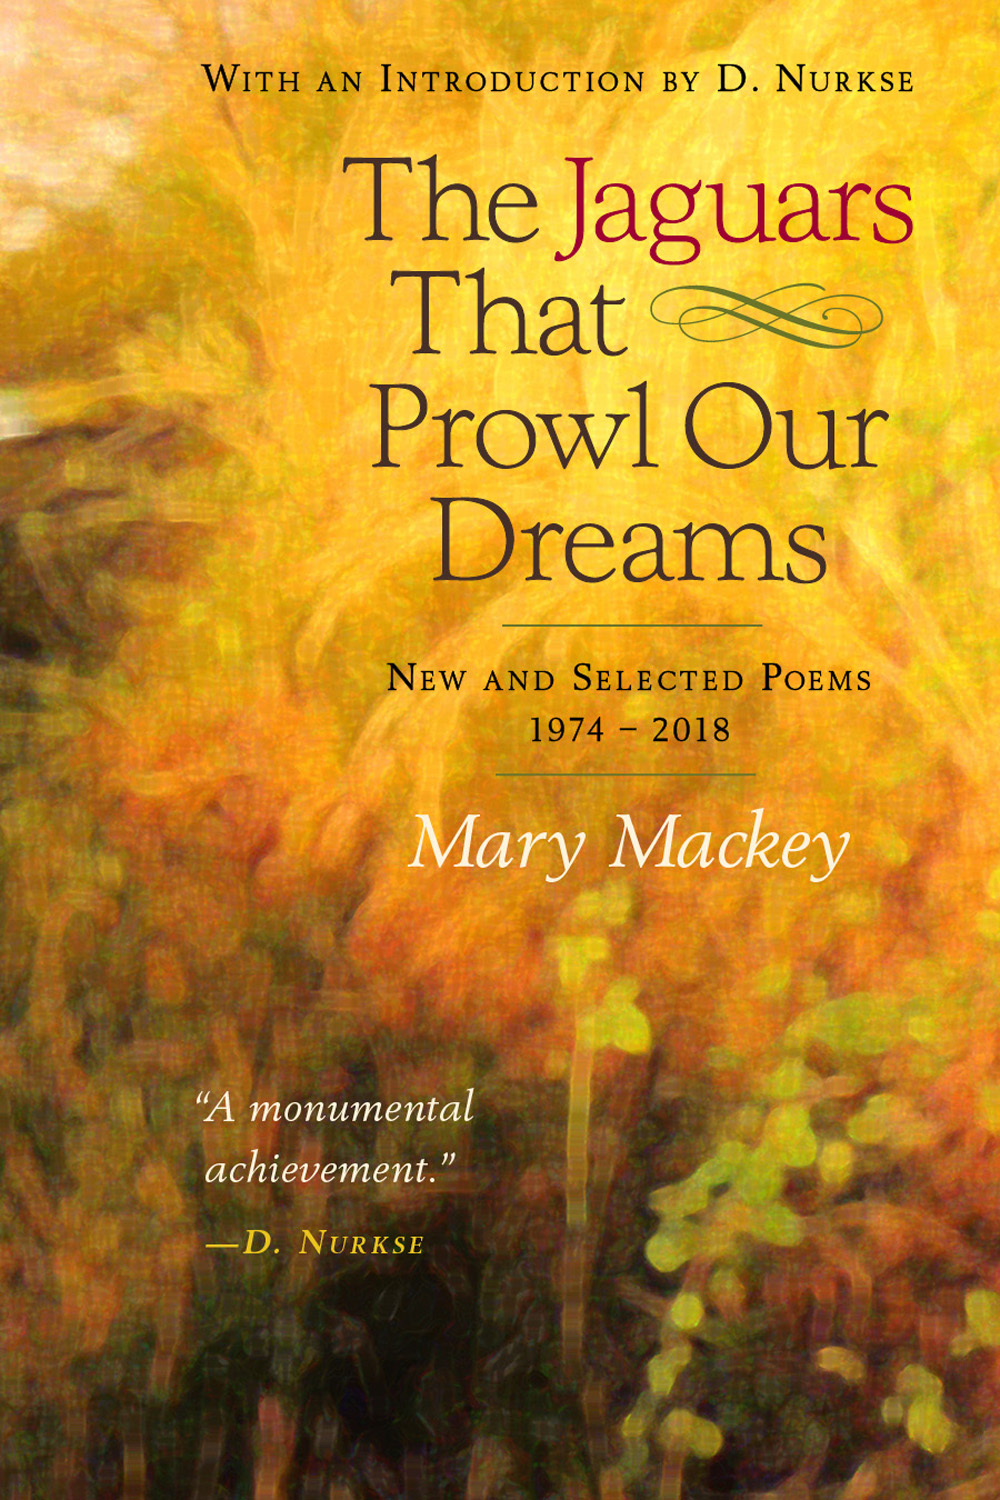 The Jaguars That Prowl Our Dreams: New and Selected Poems 1974 to 2018